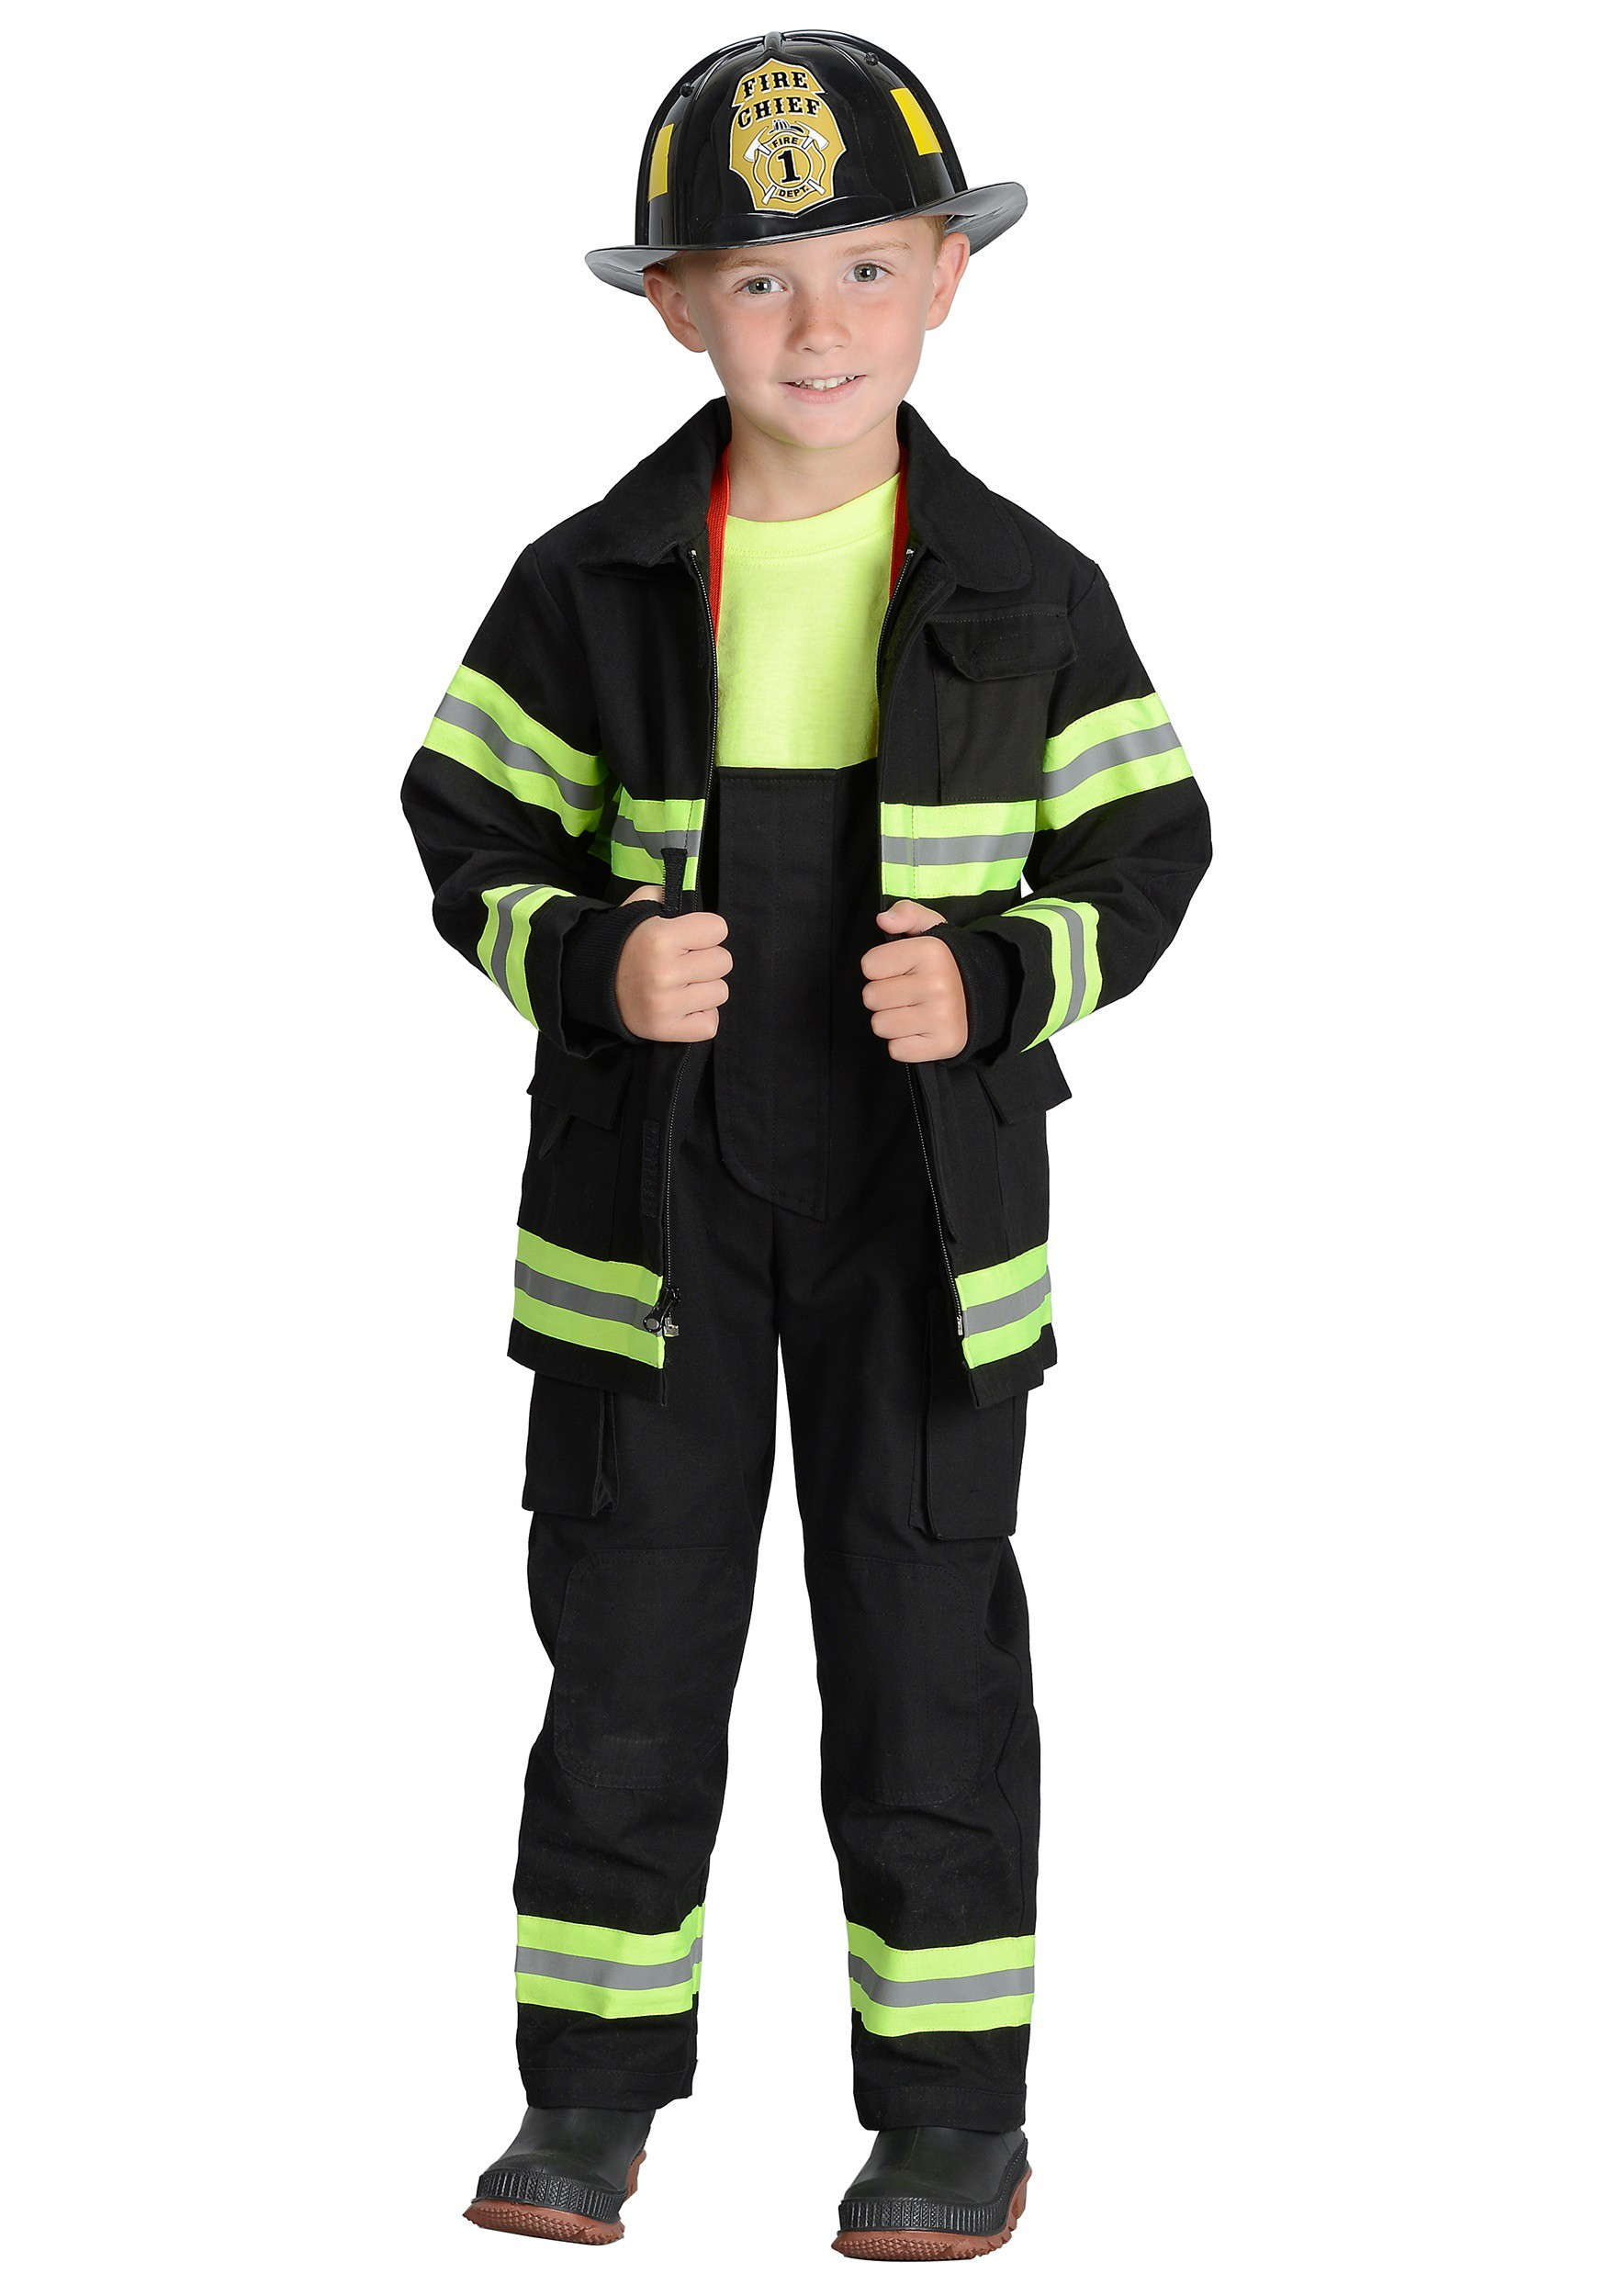 We carry fireman costumes, firewoman outfits, as well as all the accessories you'll need to put out the flames. Kids will have a blast dressing up for playtime fine, pretending to .